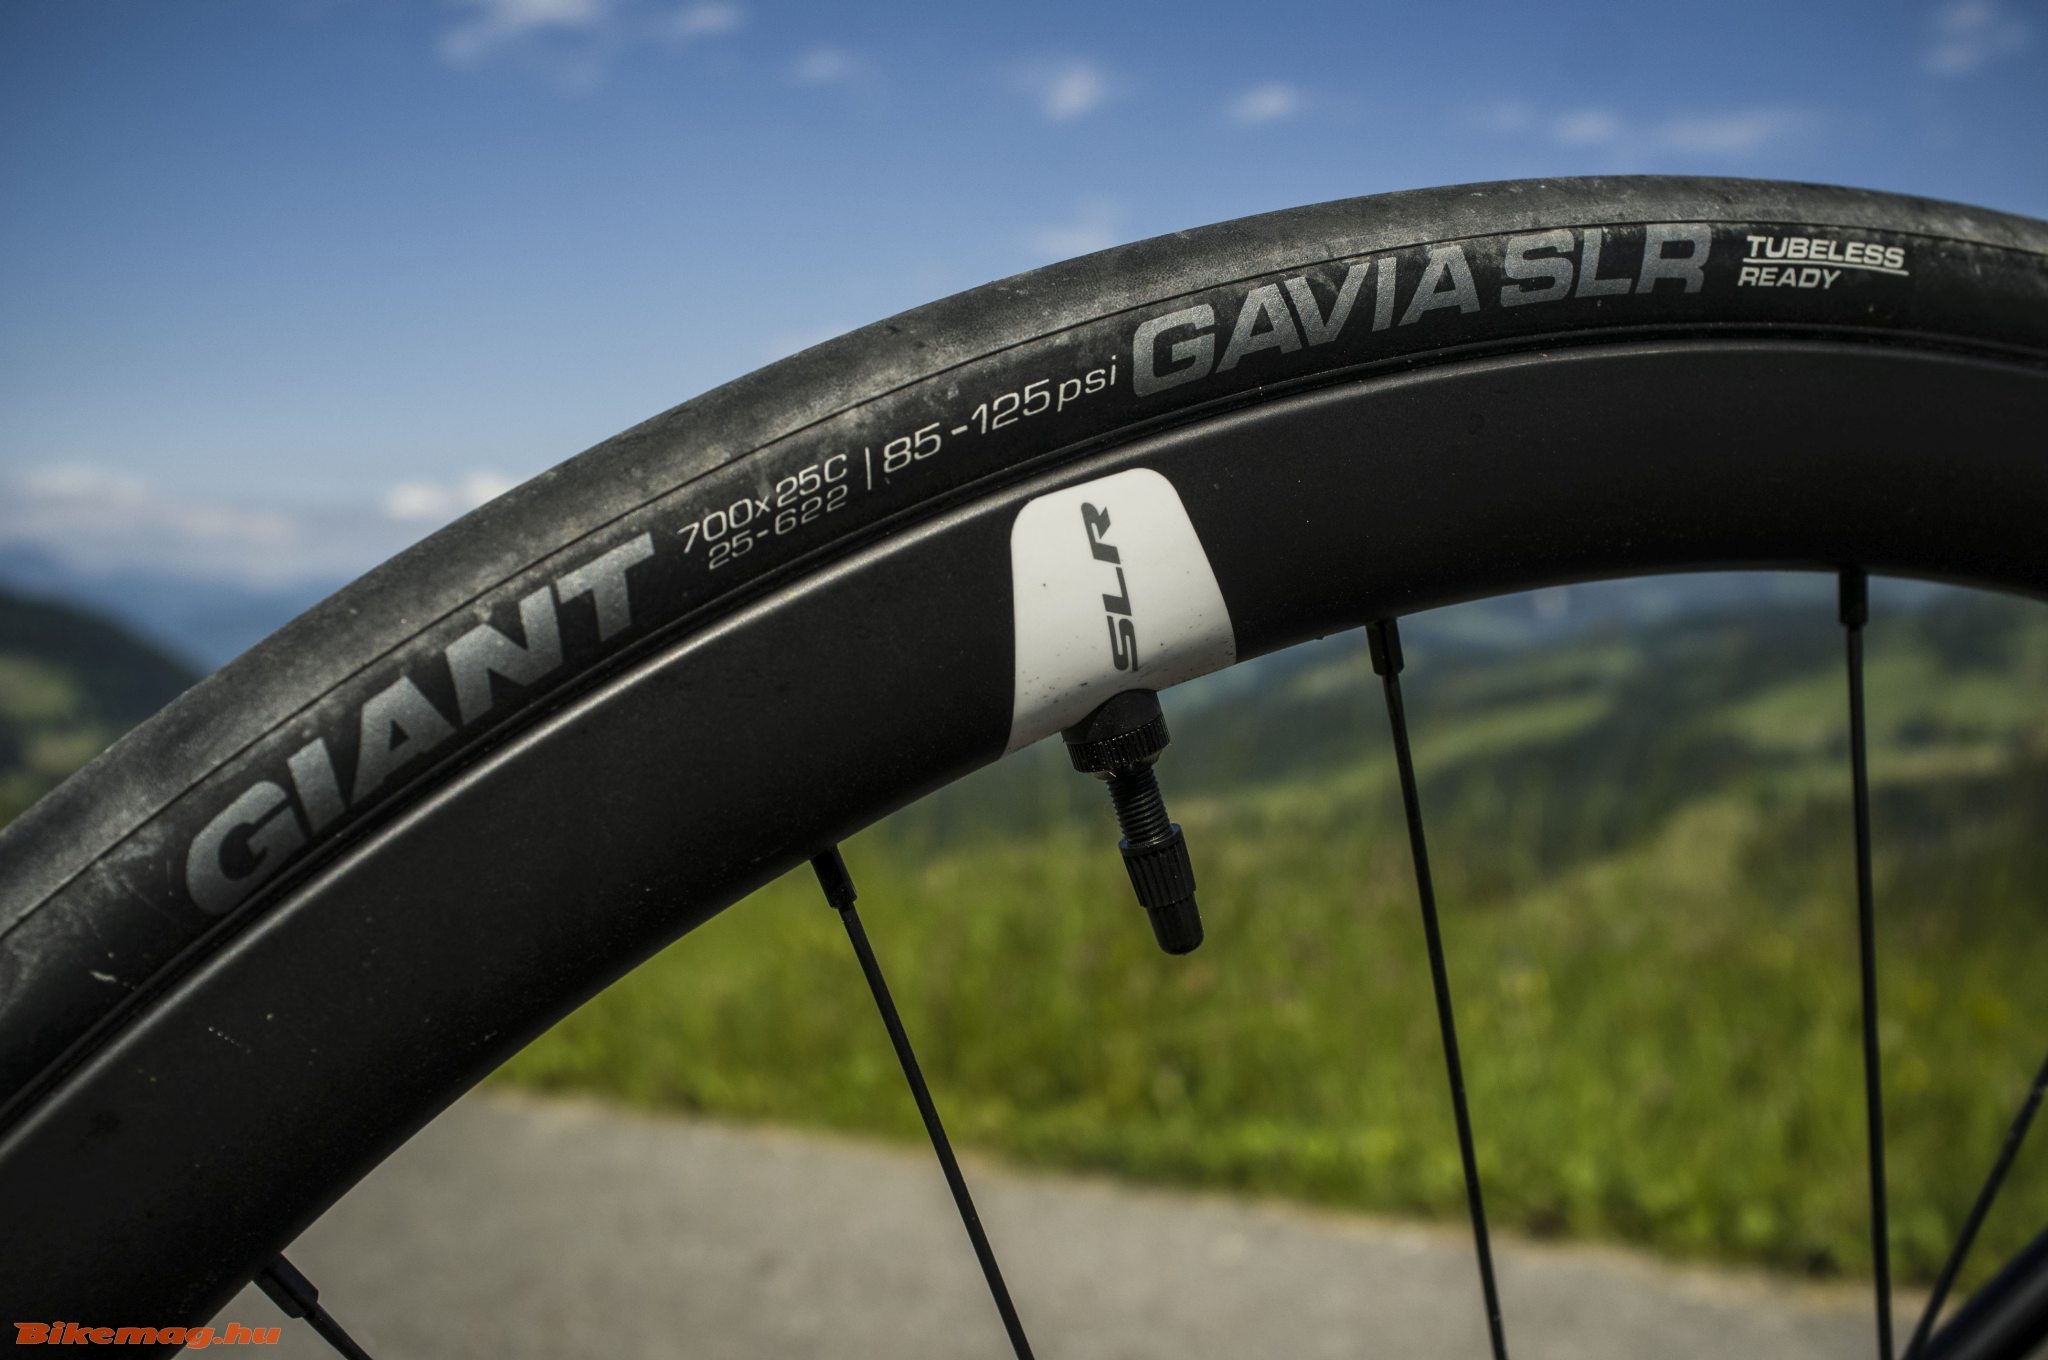 Giant TCR Advanced Pro Disc - karbon felnik tubeless gumikkal